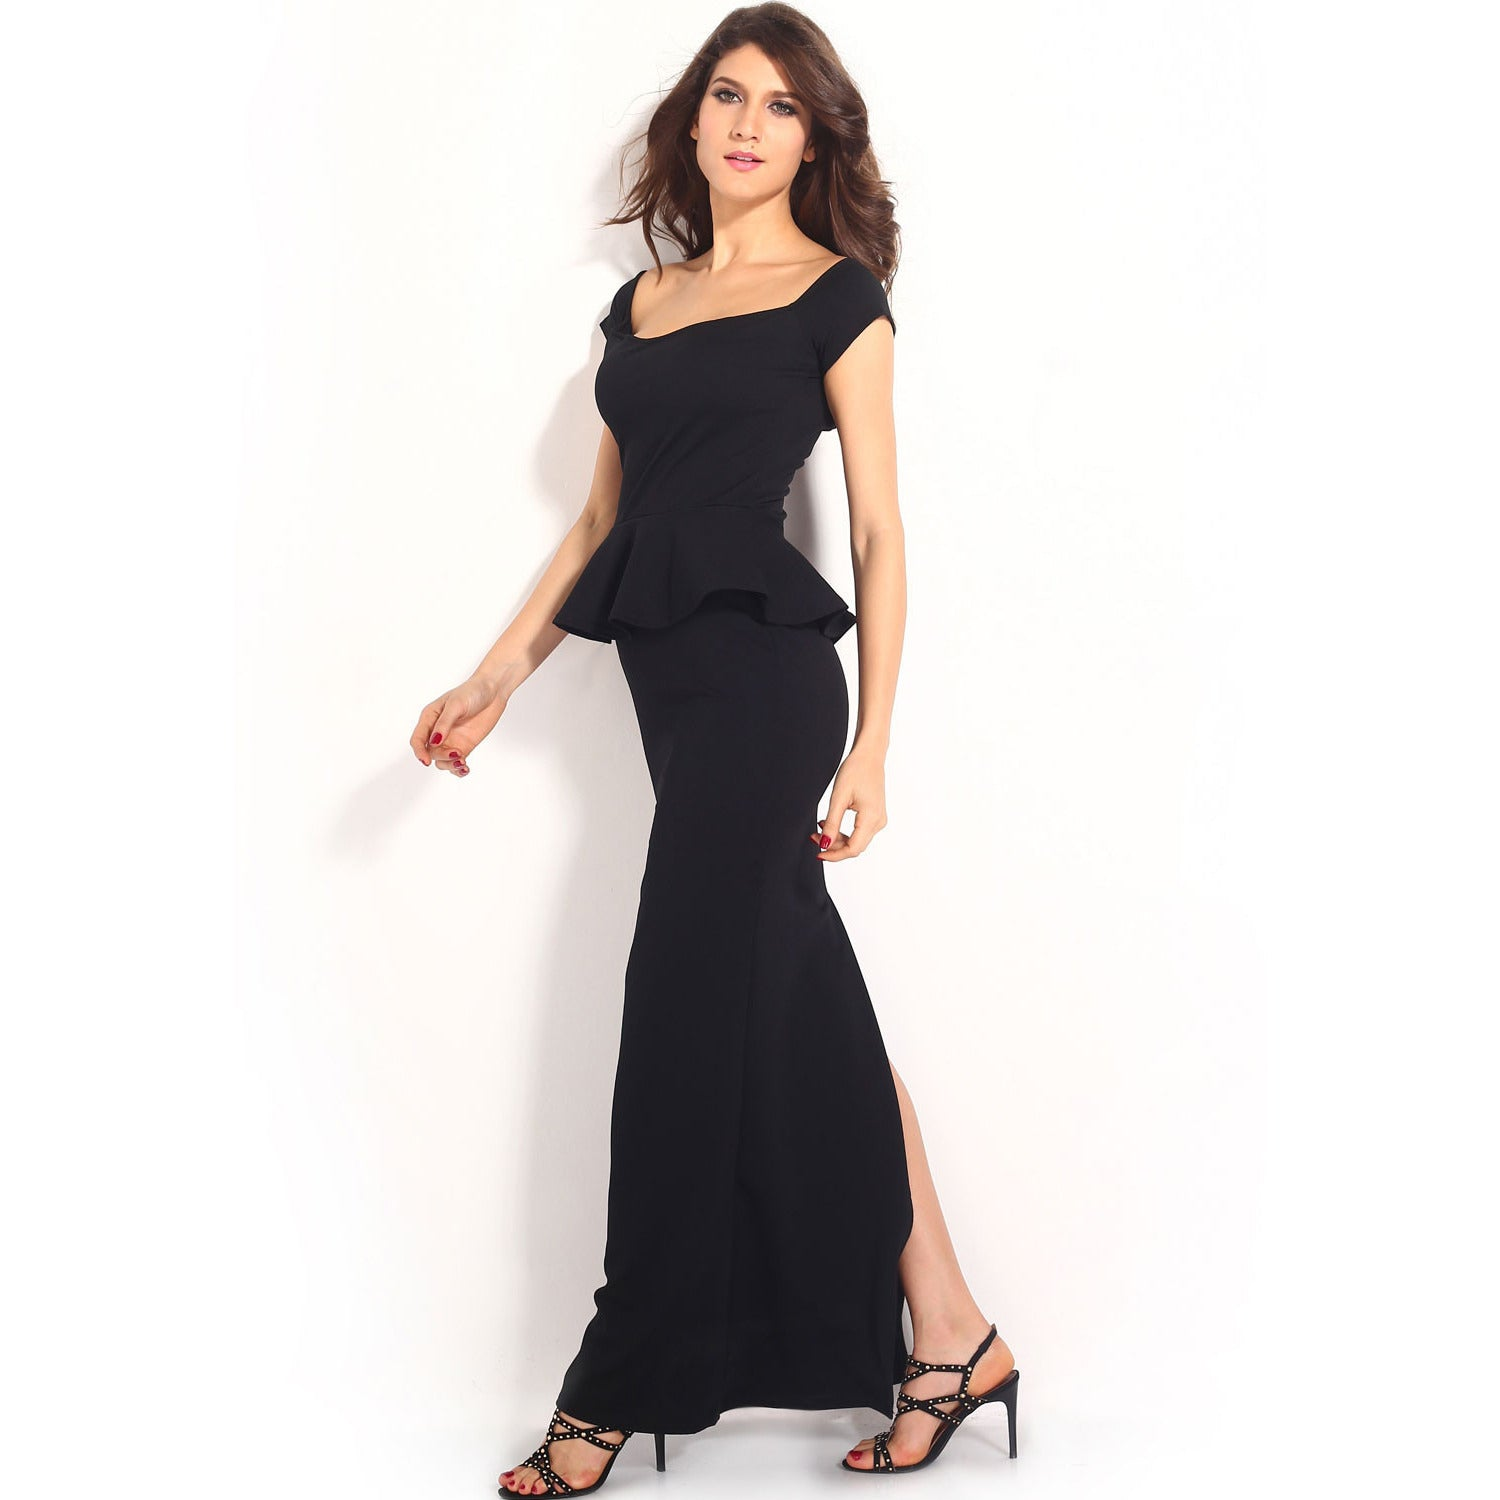 Black Peplum Maxi Dress With Drop Shoulder LAVELIQ - LAVELIQ - 6